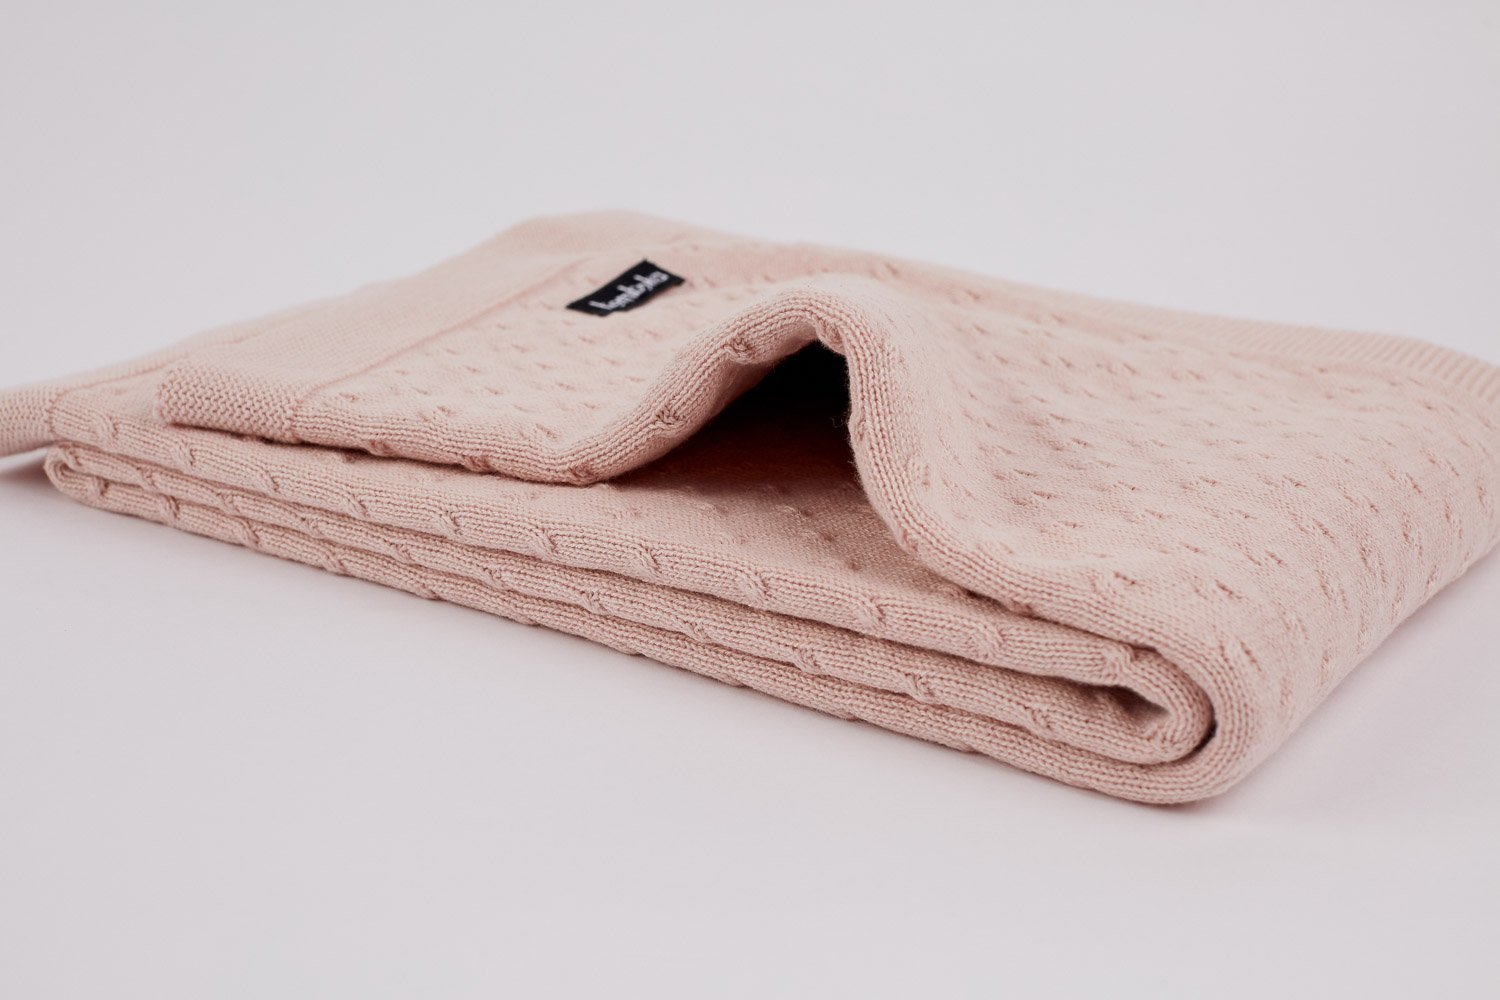 knot knit in blush colour